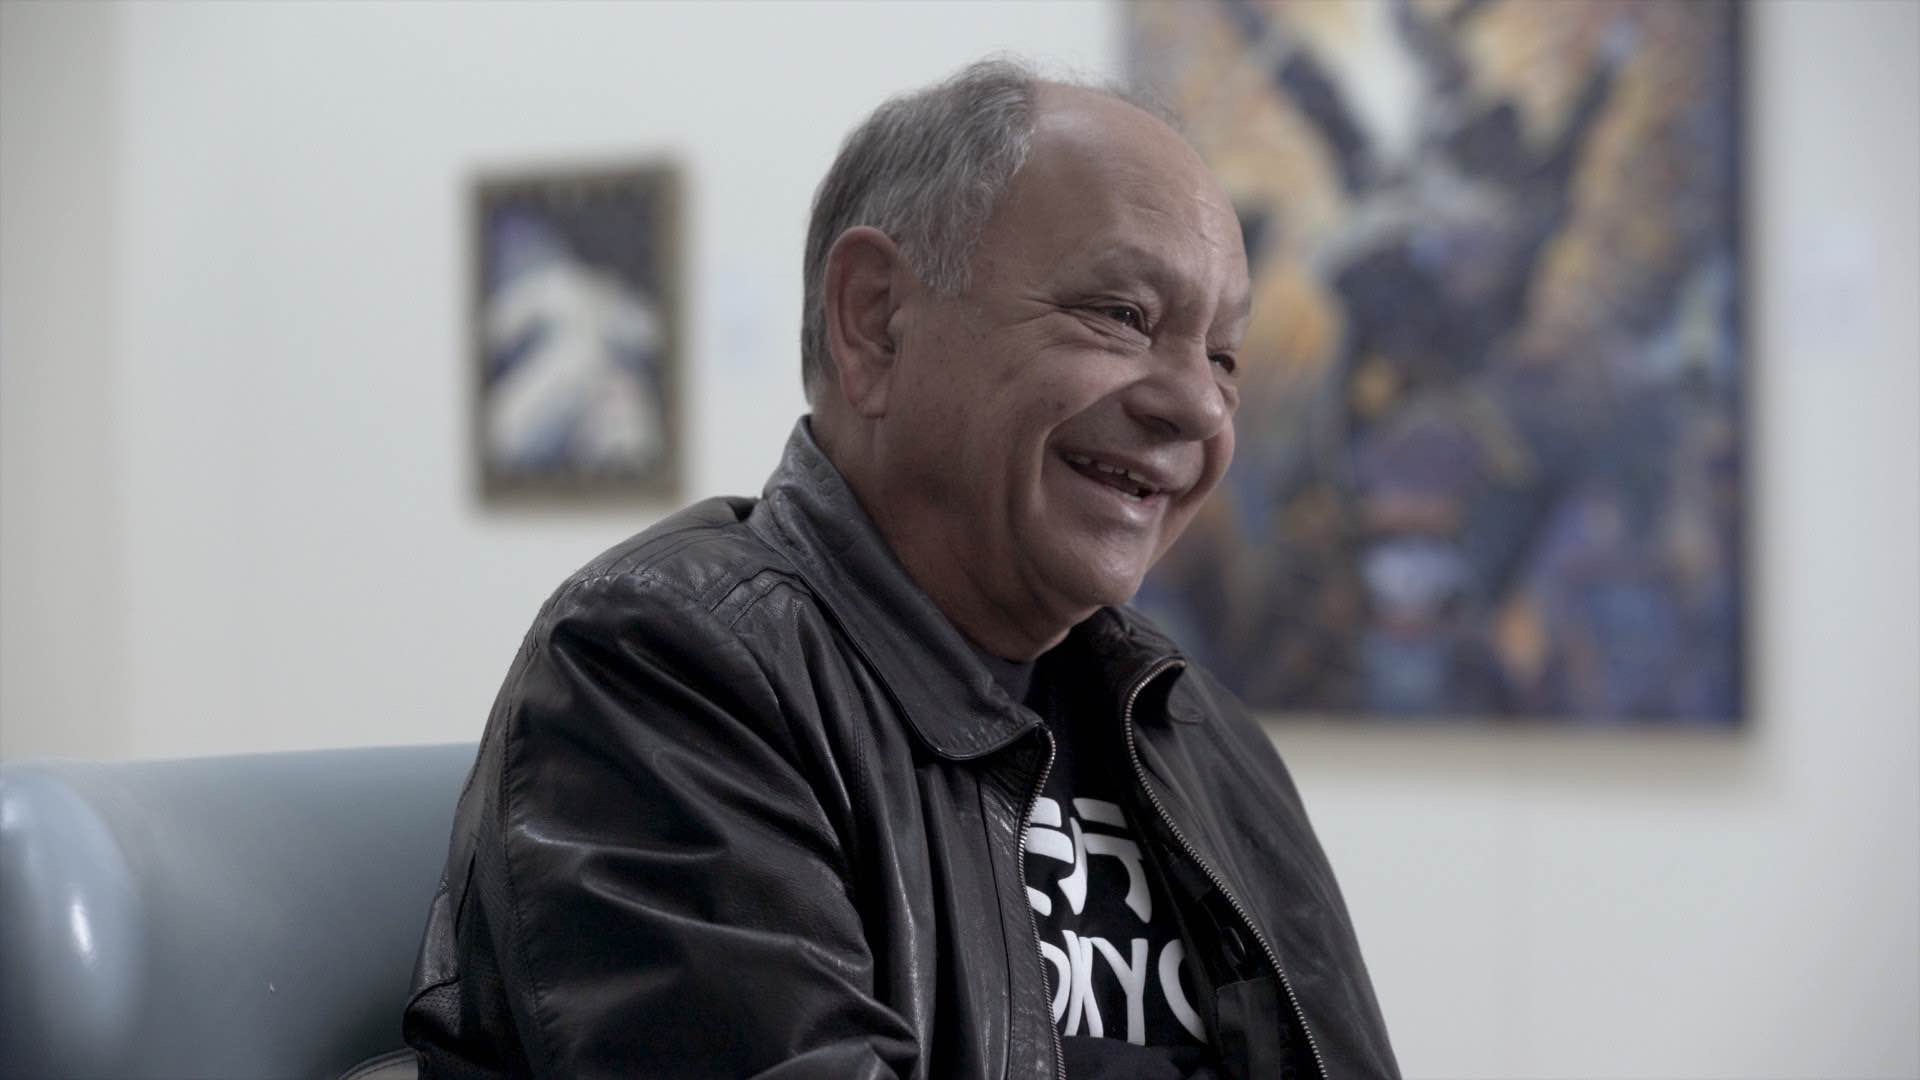 Cheech Marin in THE CHEECH screening at 6pm Wed, July 31